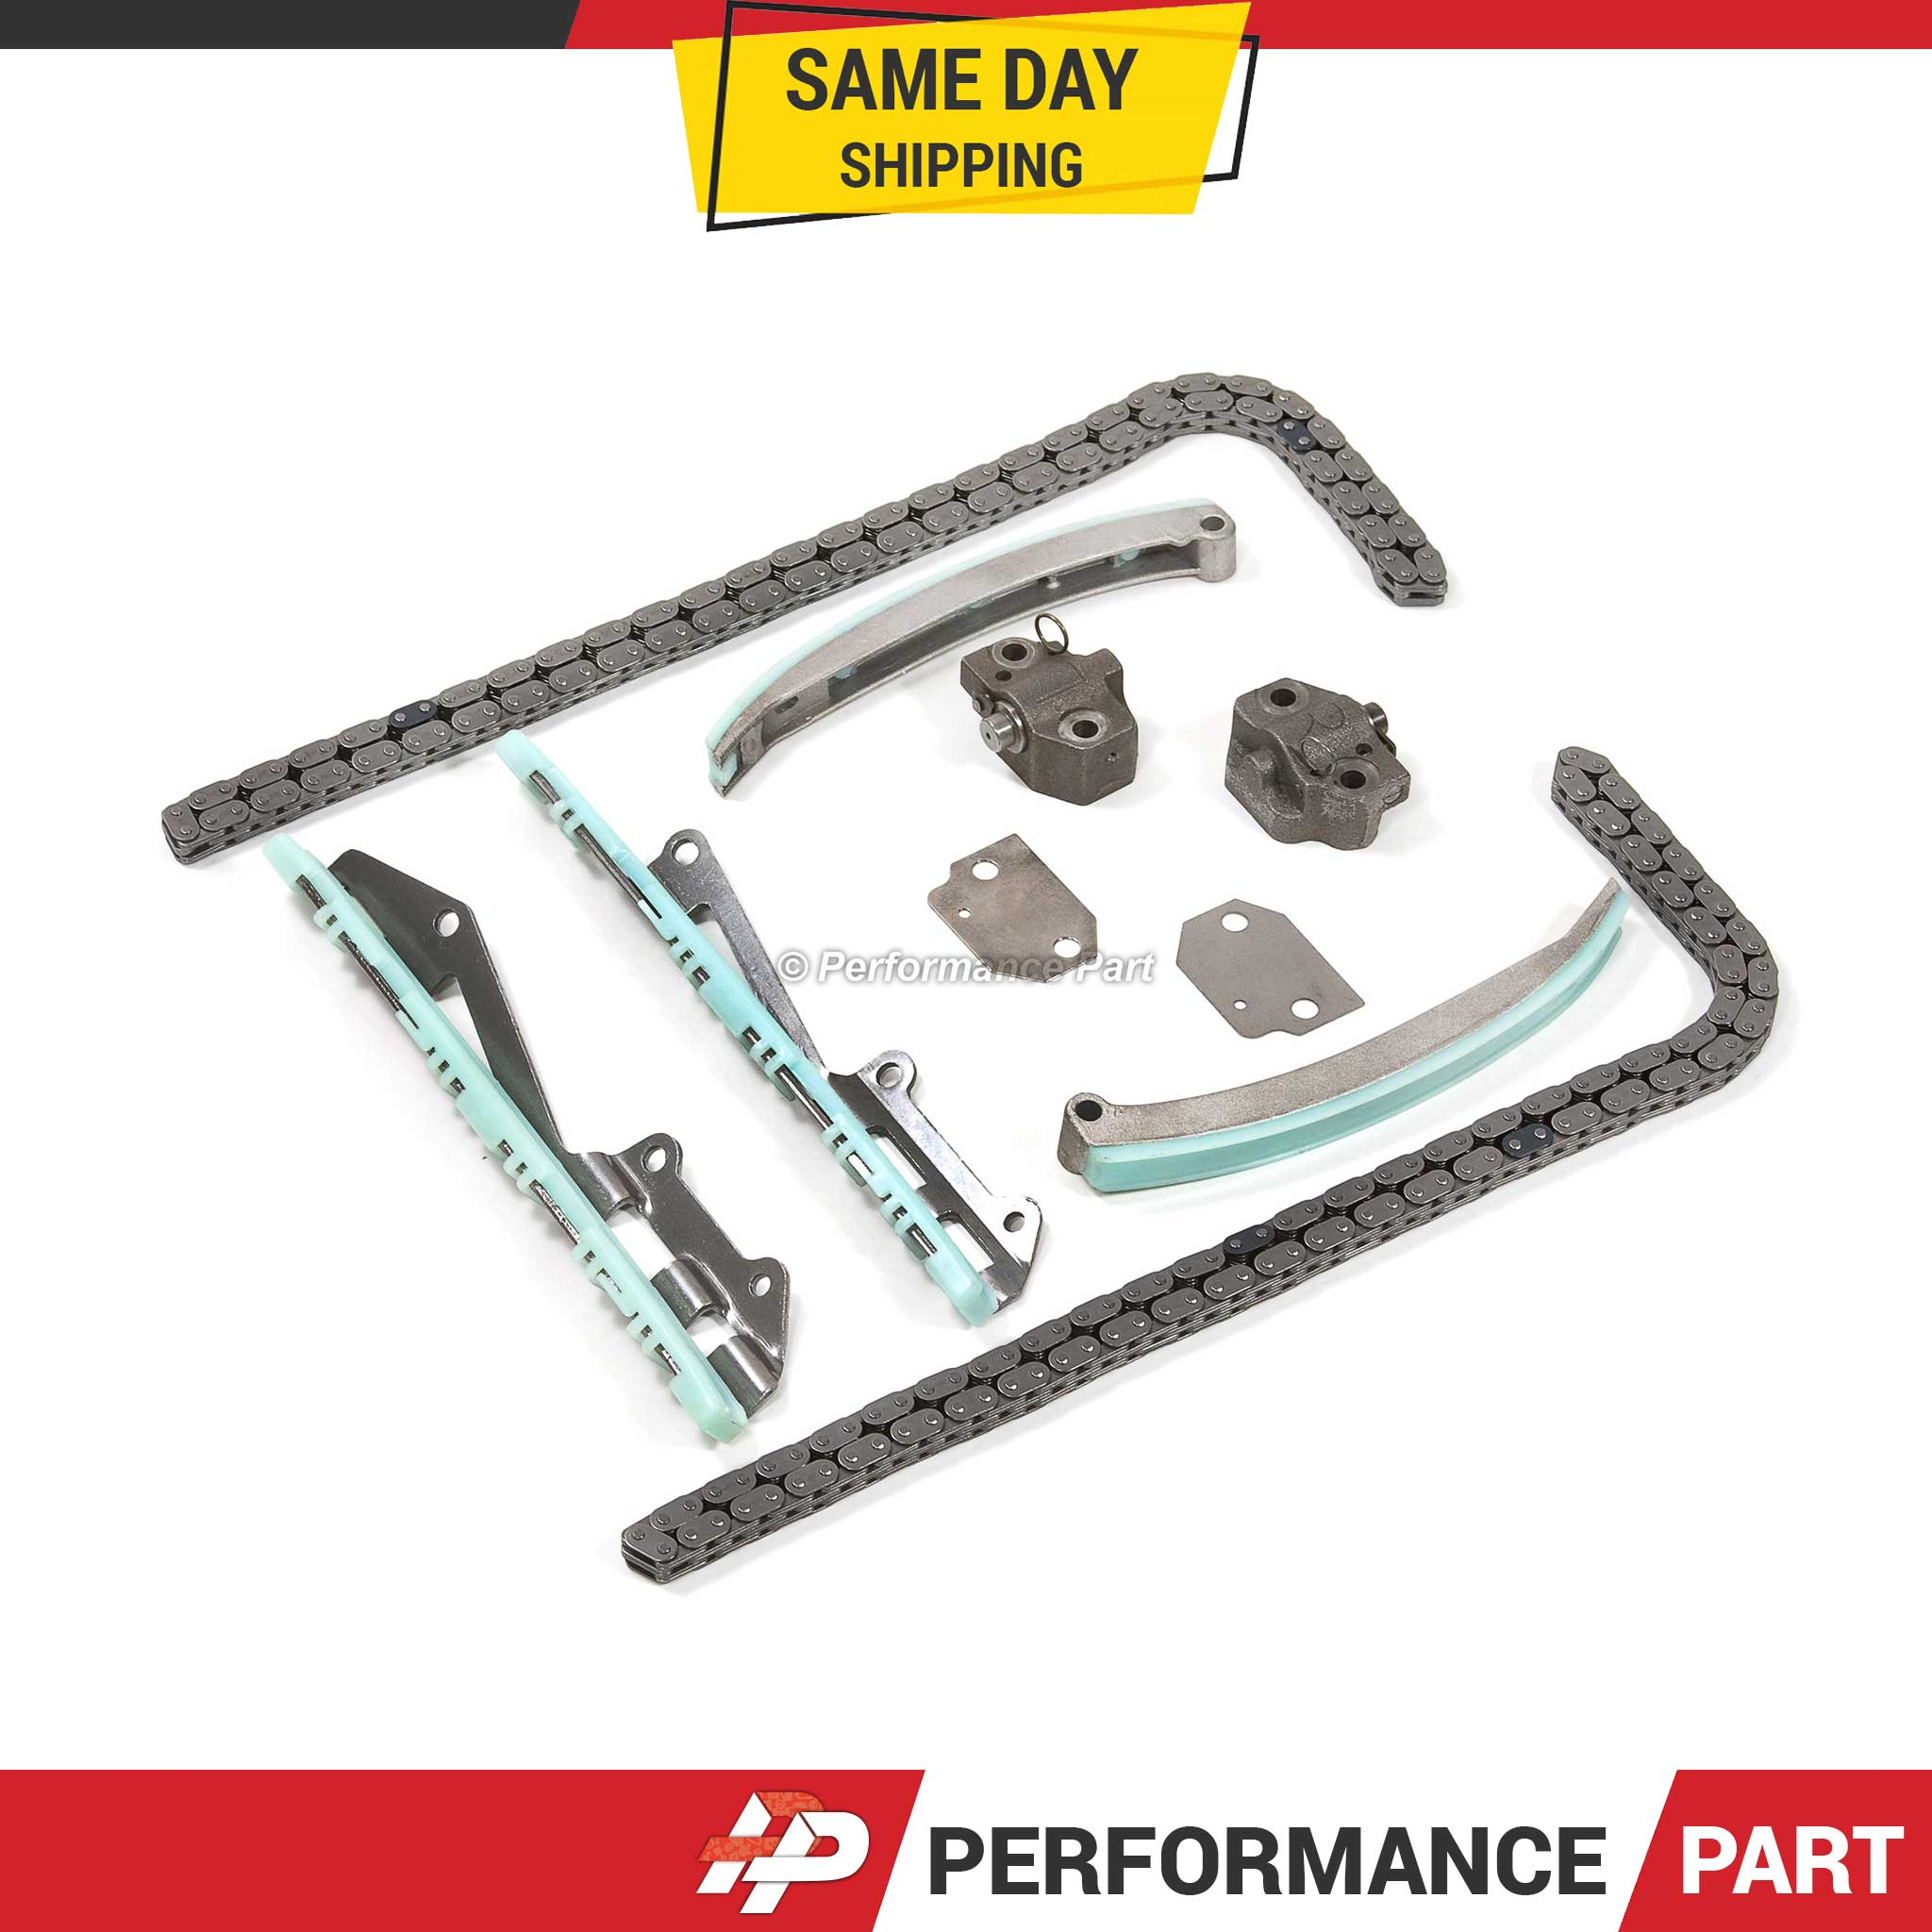 6l Engine Timing Chain Nve Media Cts 3 6 Diagram Image Is Loading 96 00 Ford 4 Sohc Vin Removal To Replace Chains On Gm 36l